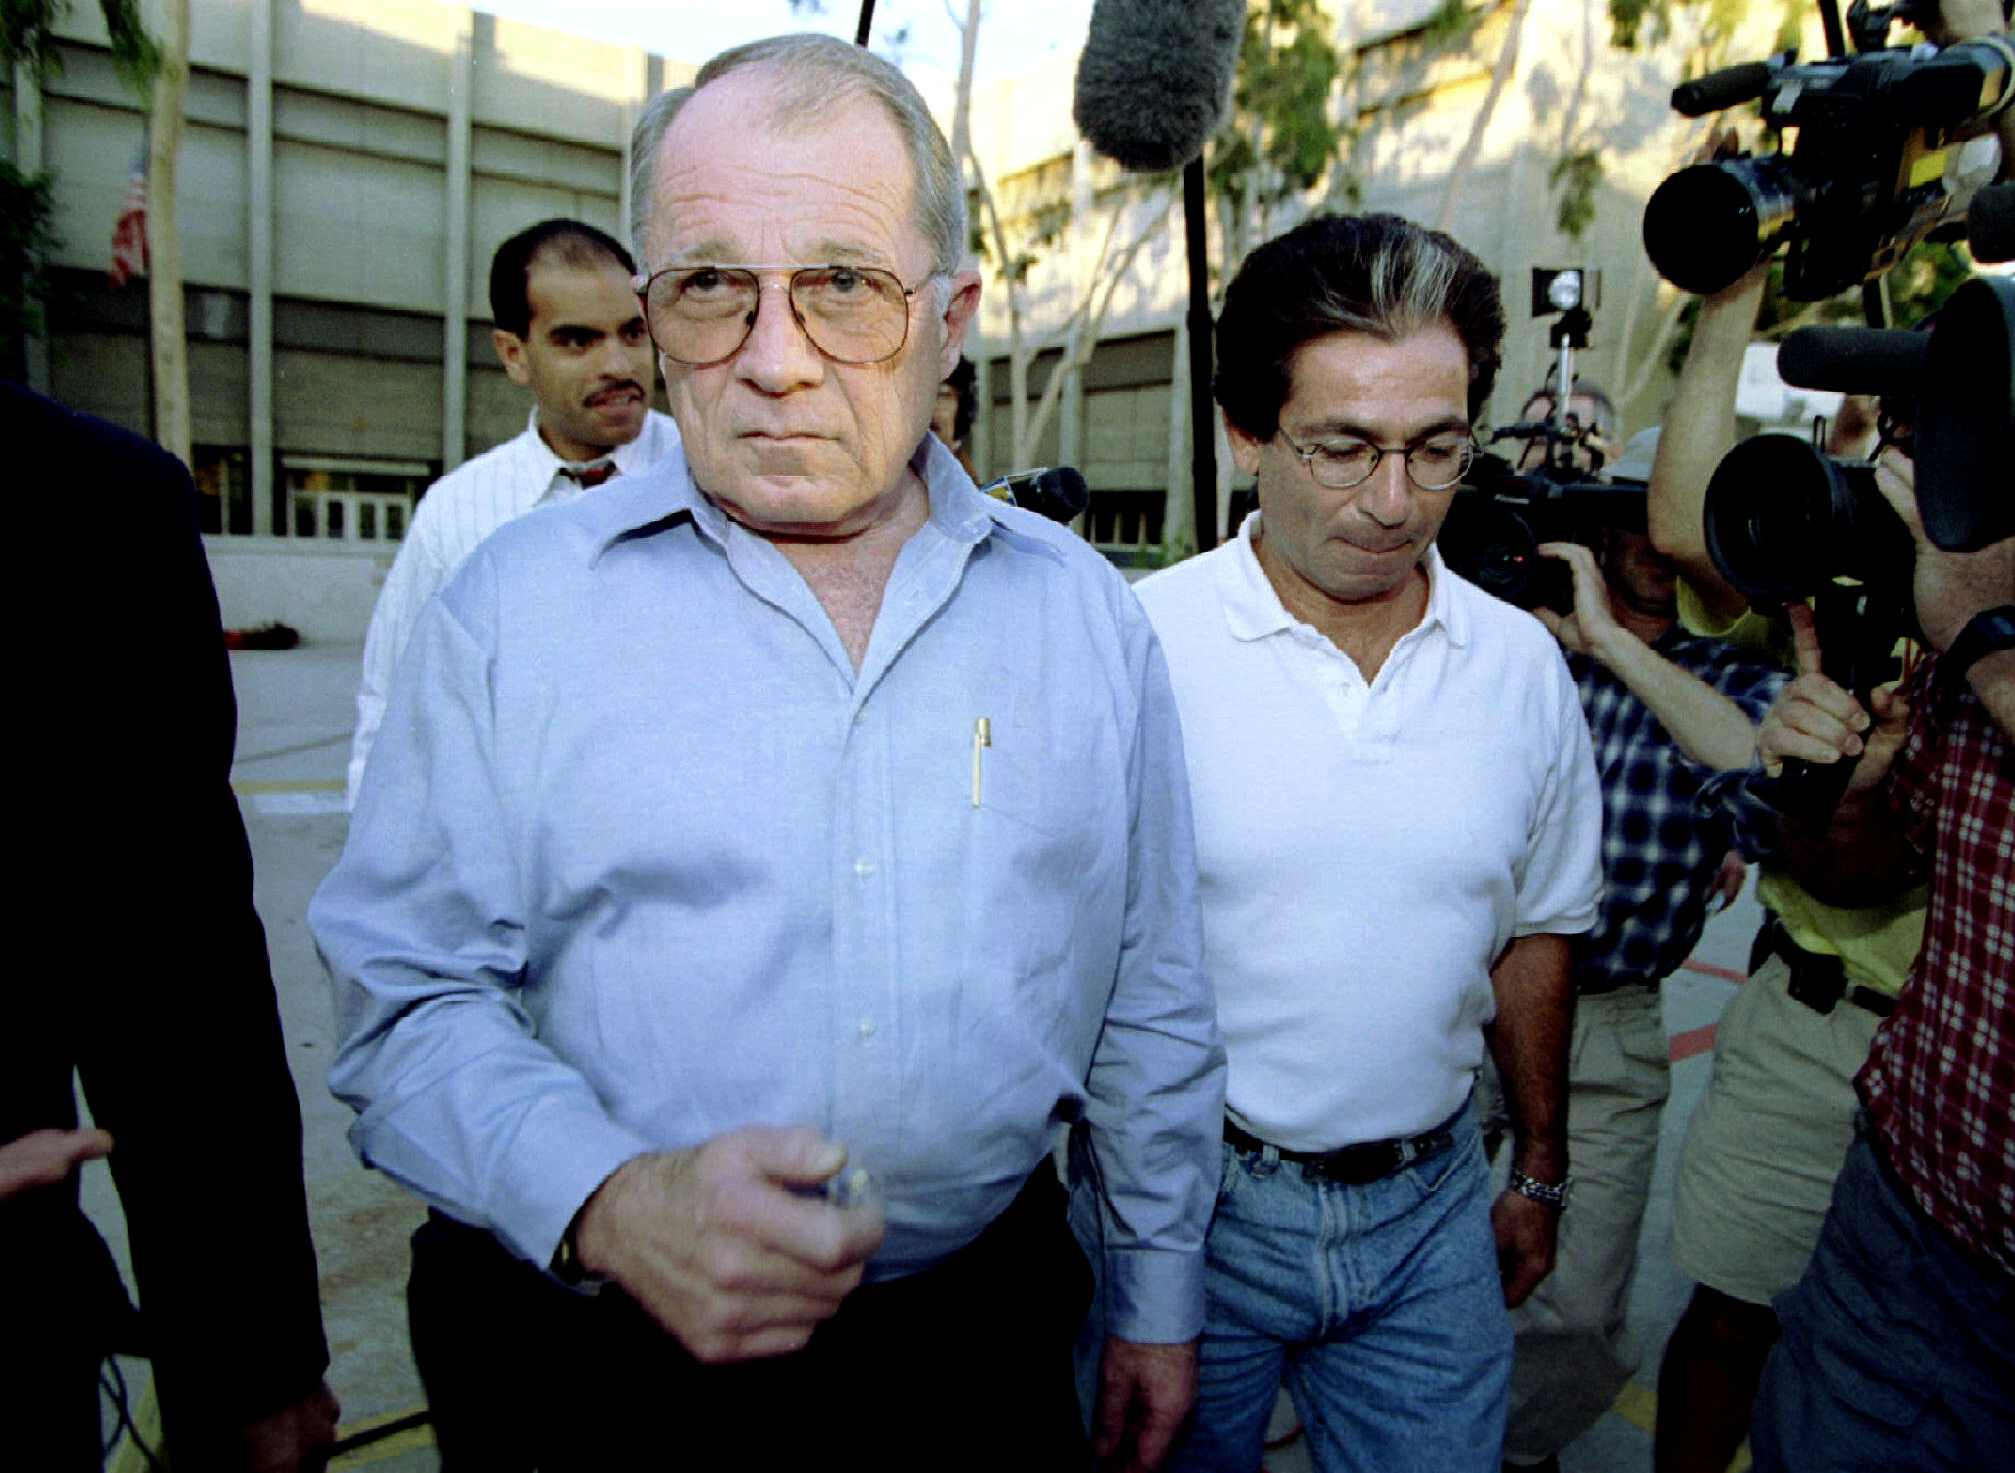 Defense attorneys F. Lee Bailey (l) and Robert Kardashian leave the Los Angeles Mens Central Jail after visiting their client, double murder defendant OJ Simpson, October 2, 1995. REUTERS/Jeff Vinnick/File Photo